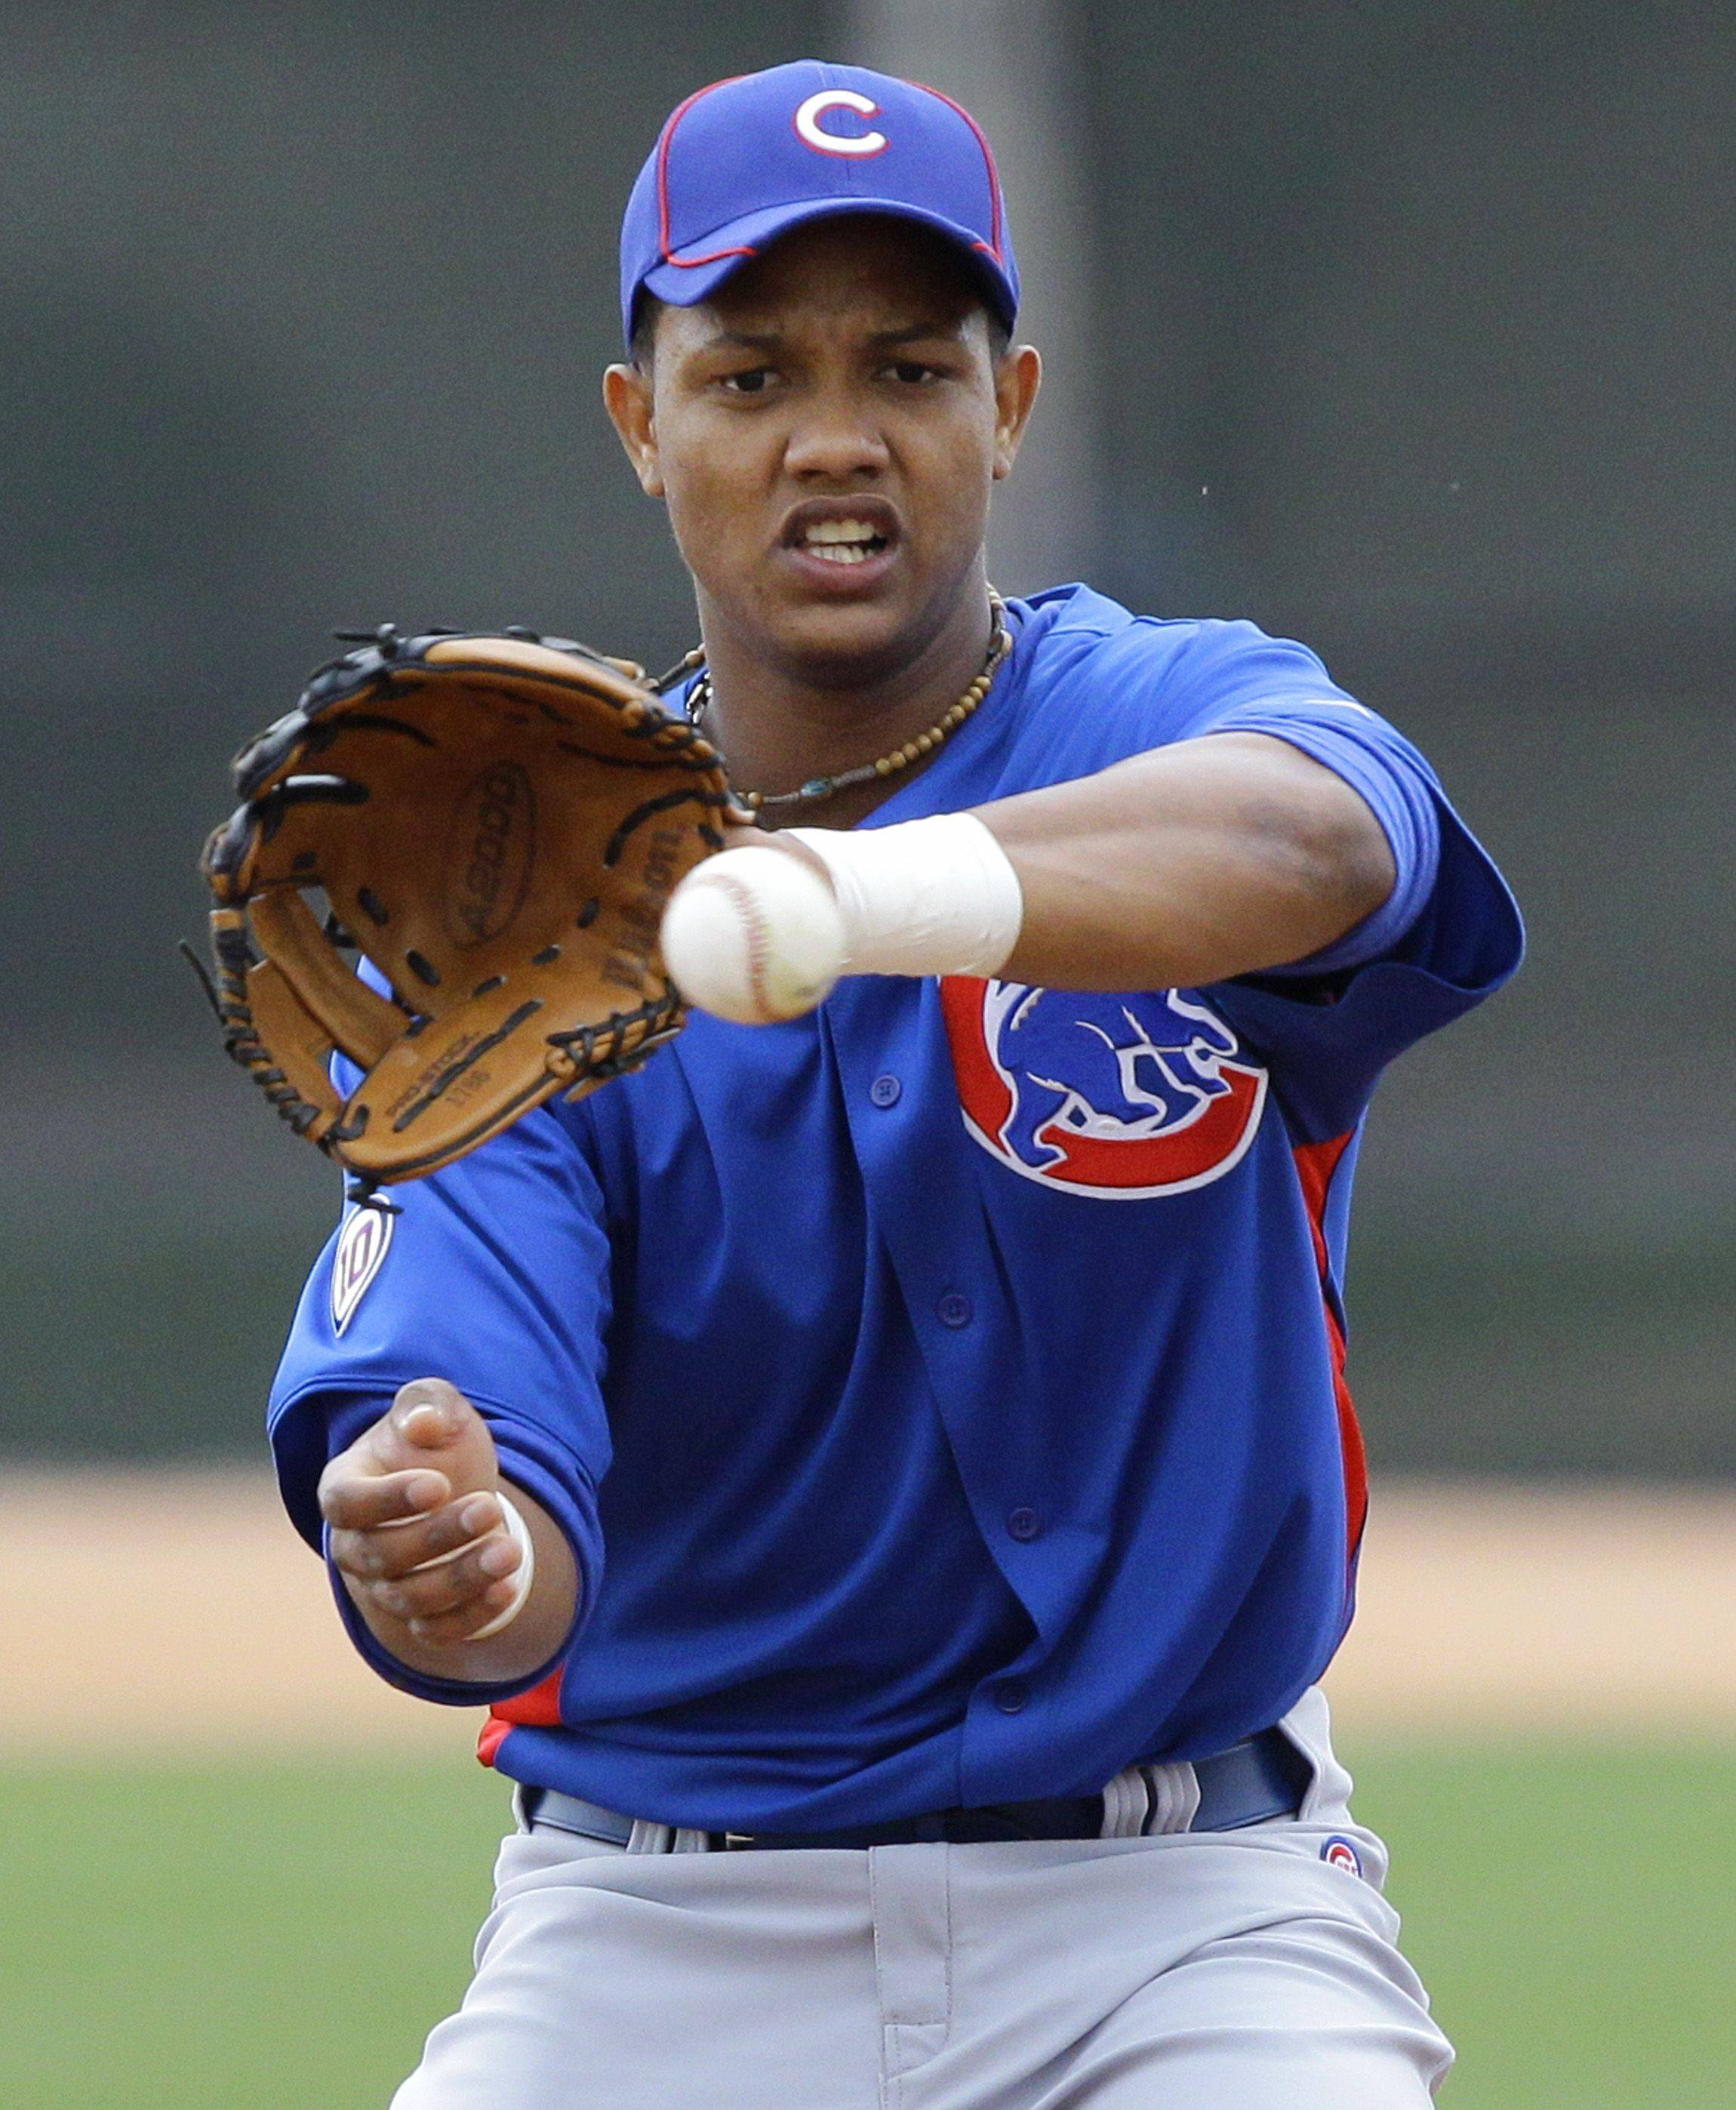 Chicago Cubs infielder Starlin Castro takes fielding practice, Saturday, Feb. 19, 2011, at the Cubs' baseball spring training facility in Mesa, Ariz.